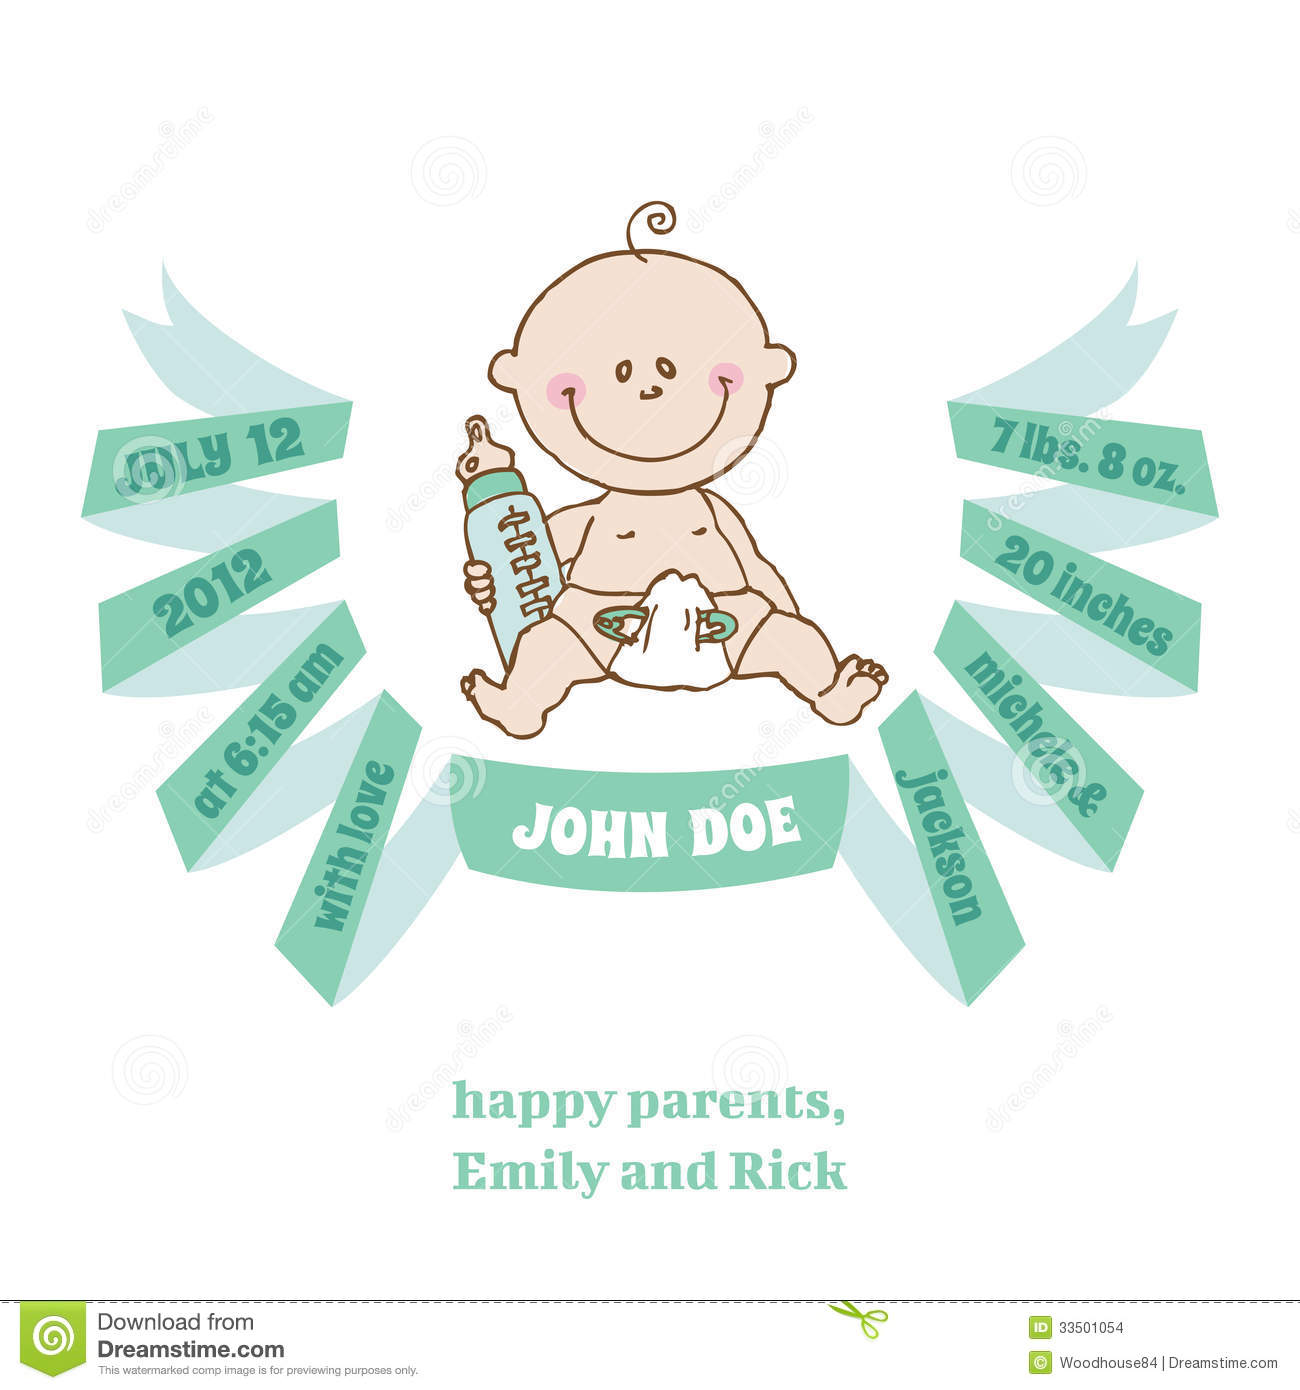 Baby boy arrival card vector by leonart image 600444 vectorstock - Baby Shower And Arrival Card Baby Theme Stock Images Wallpaper Gallery Baby Boy Shower Card